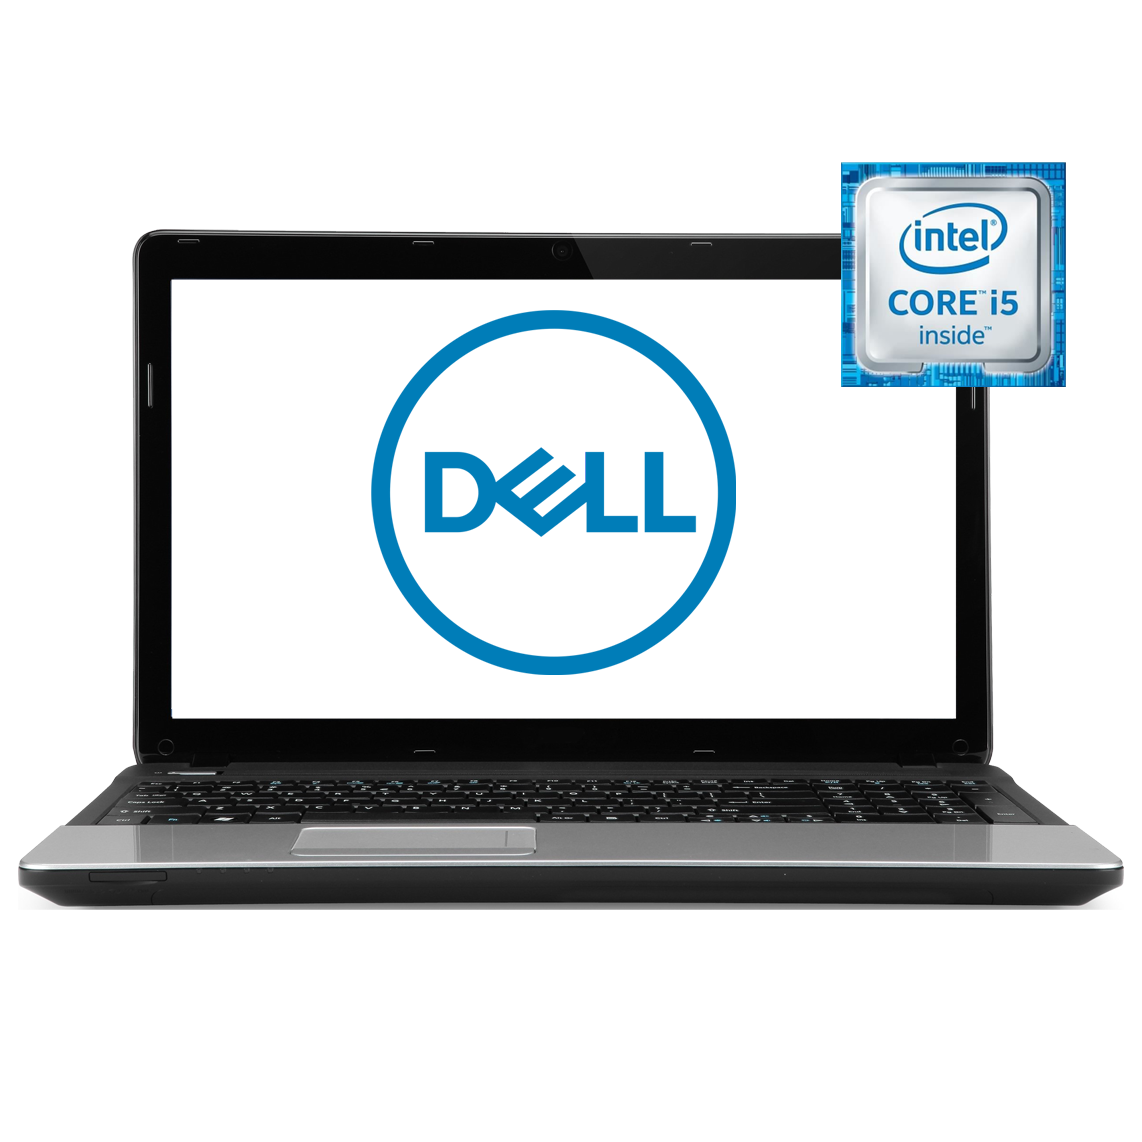 Dell - 13 inch Core i5 2nd Gen